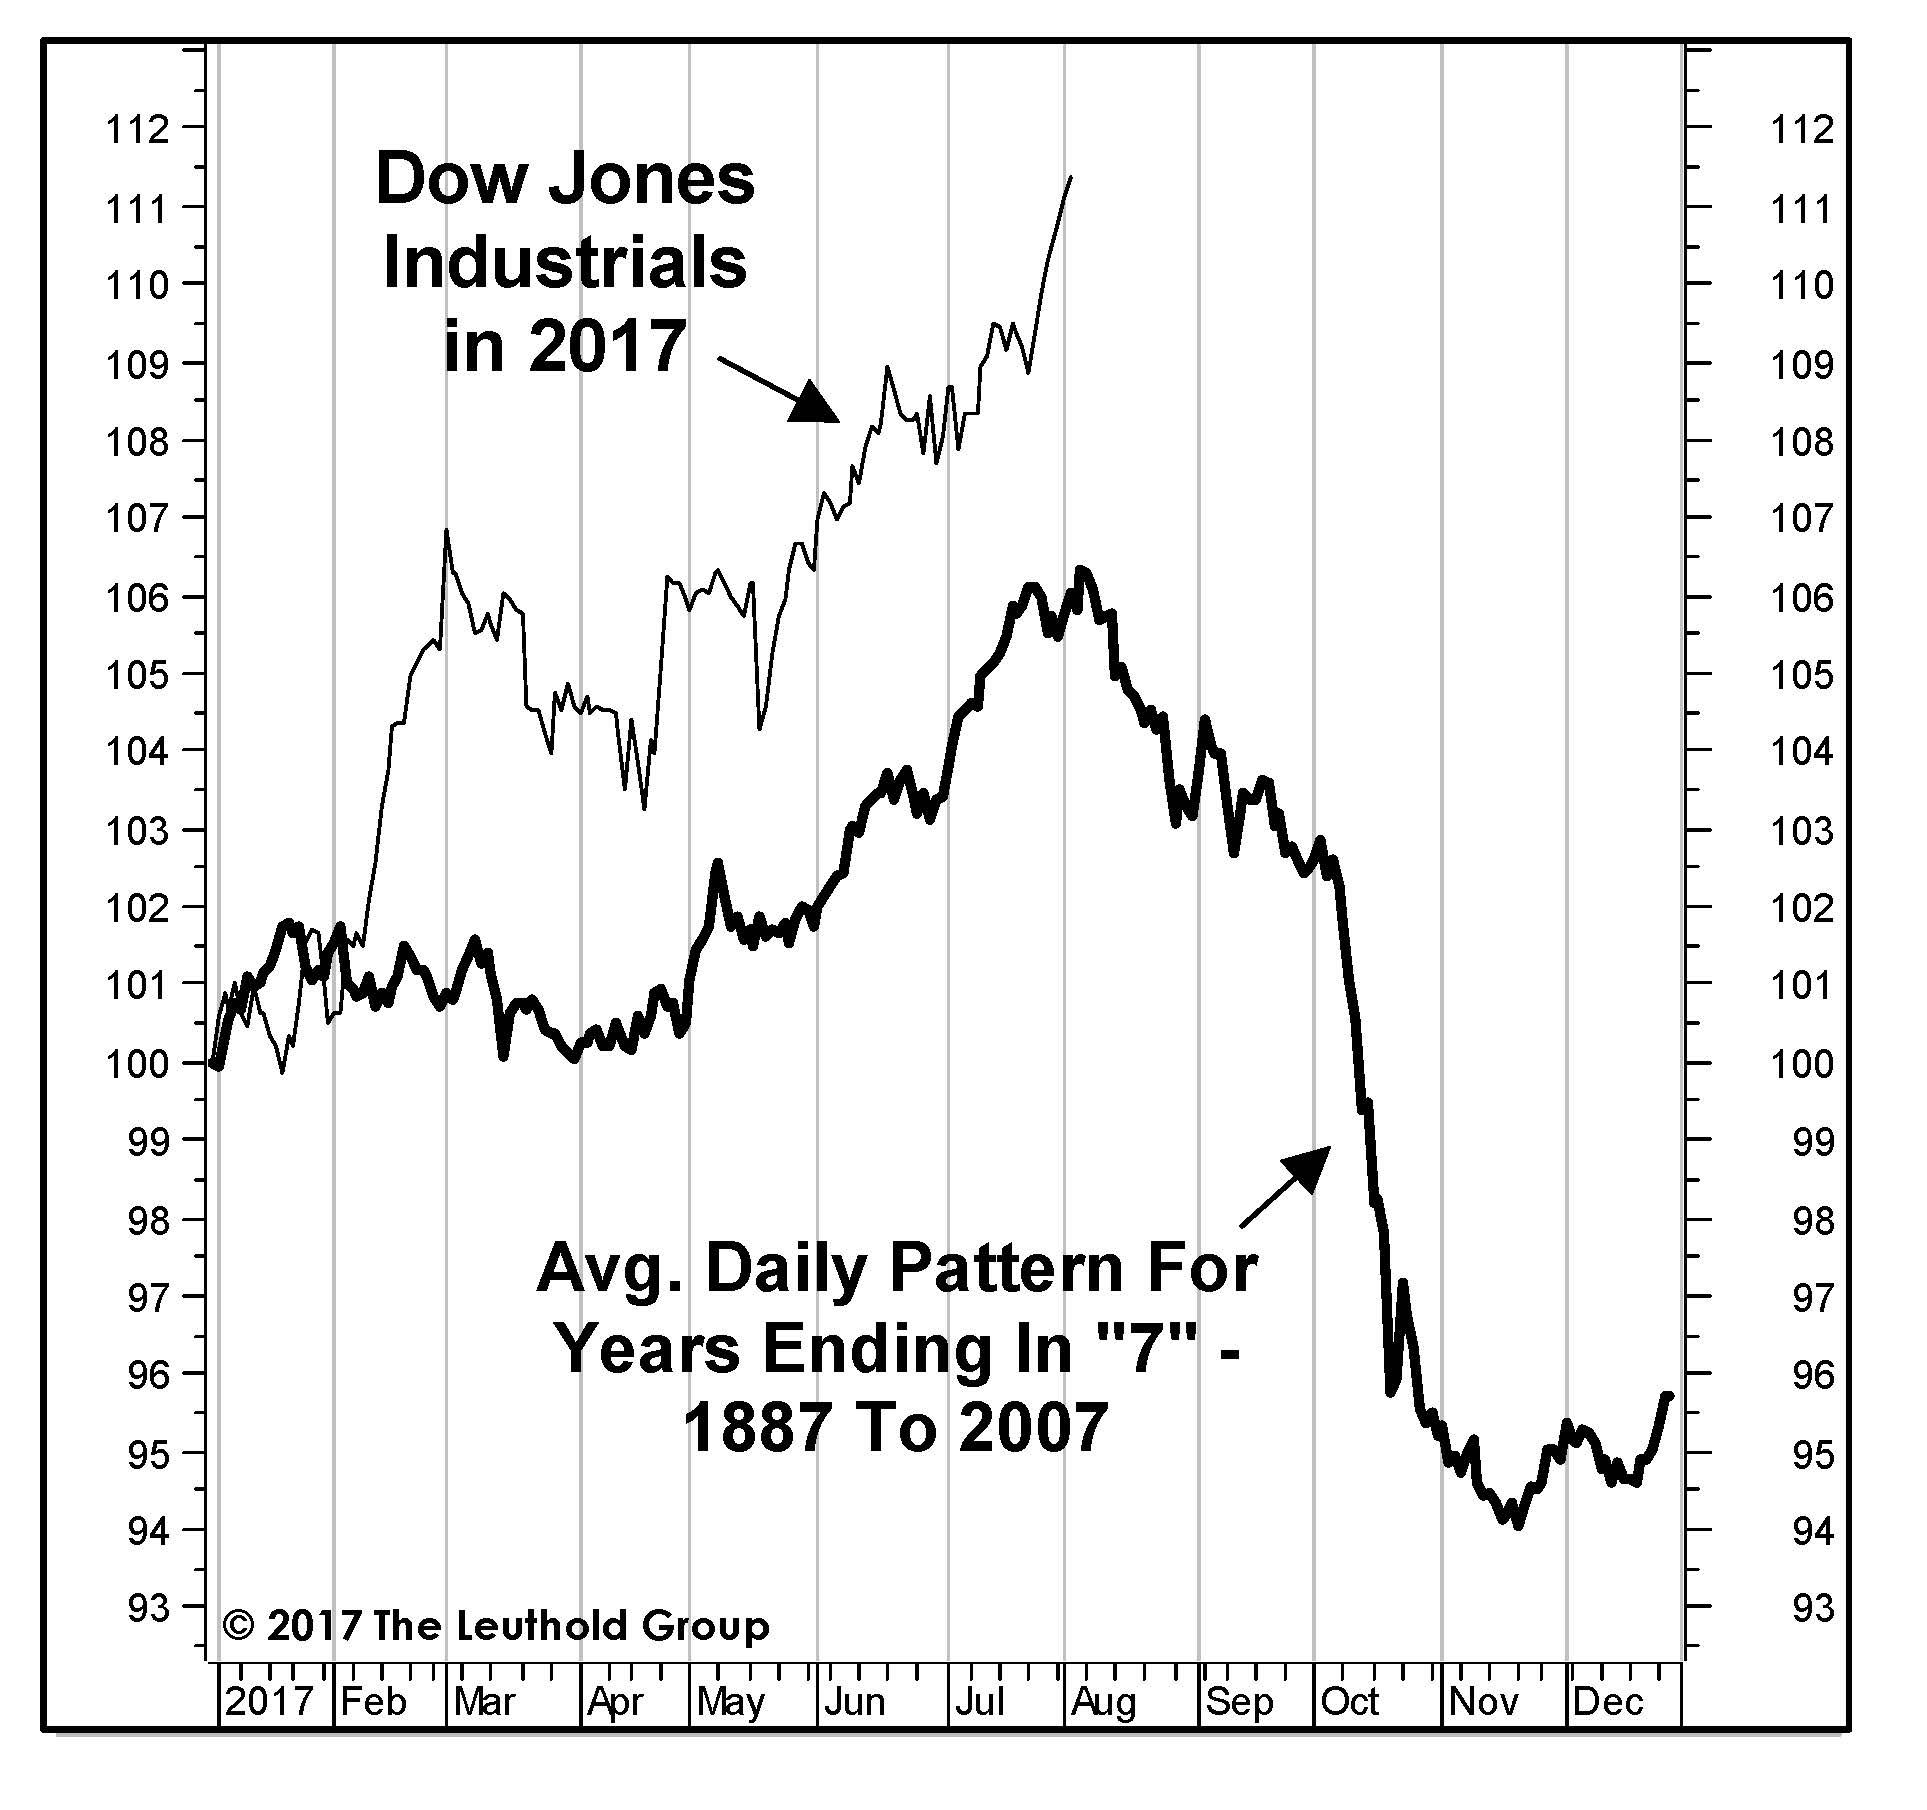 dow_daily_pattern_1887-2007.jpg